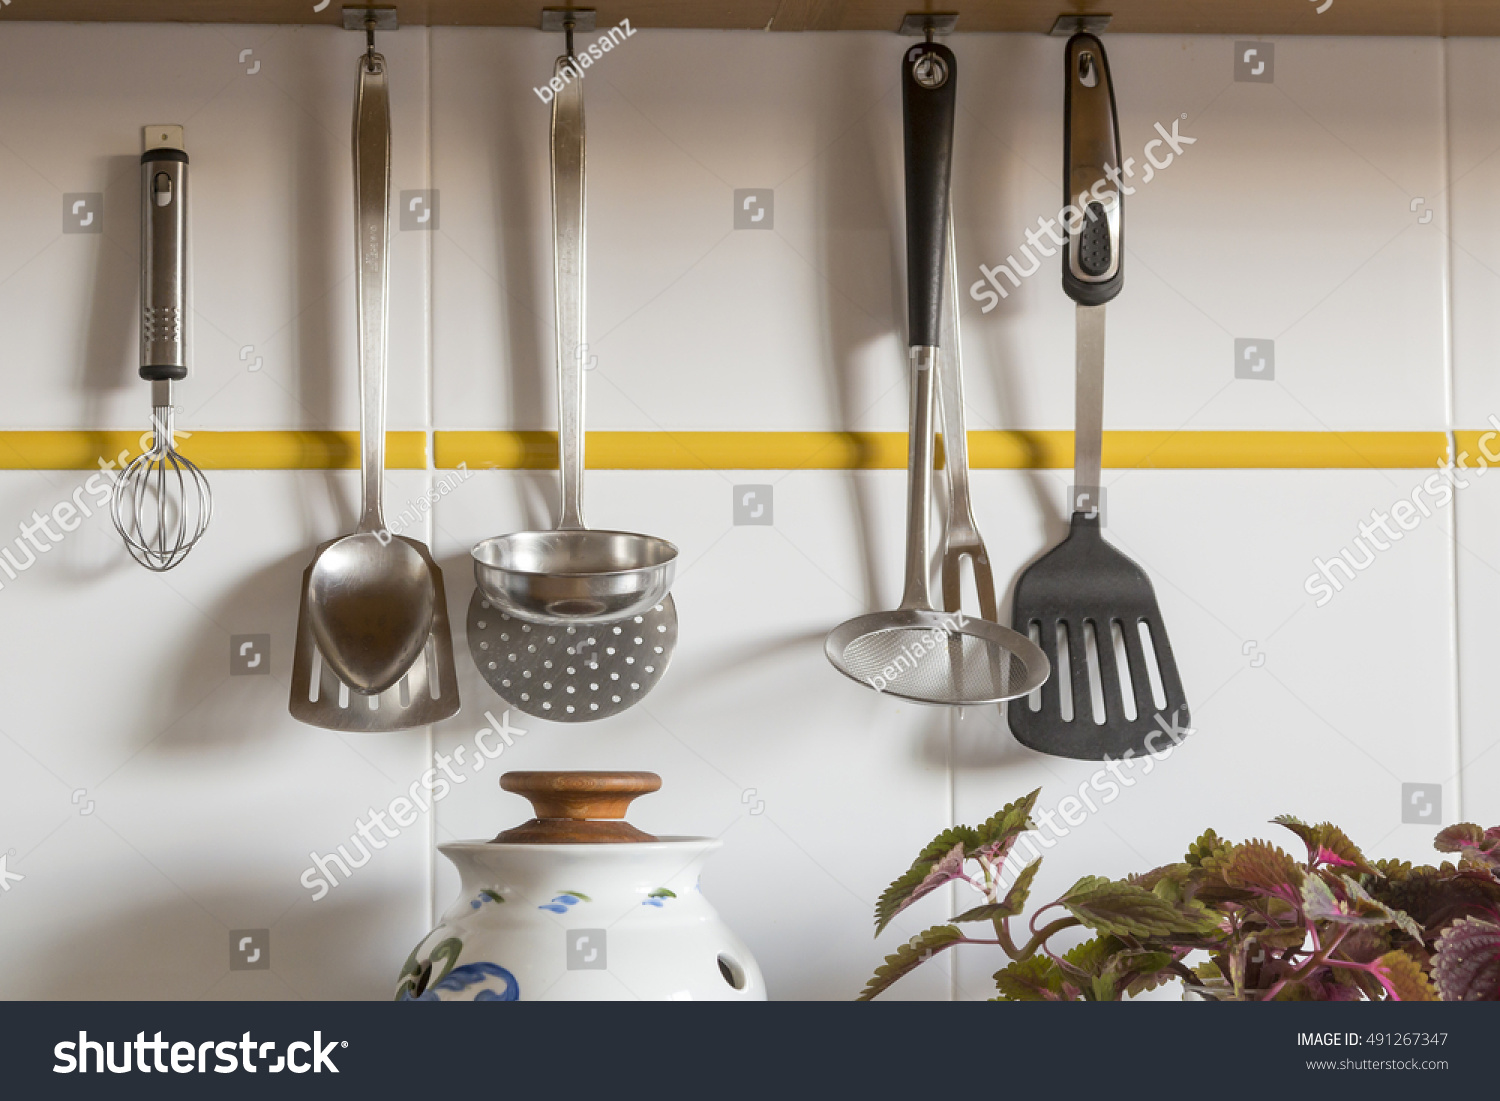 View Kitchen Counter Cutting Board Hanging Stock Photo 491267347 ...